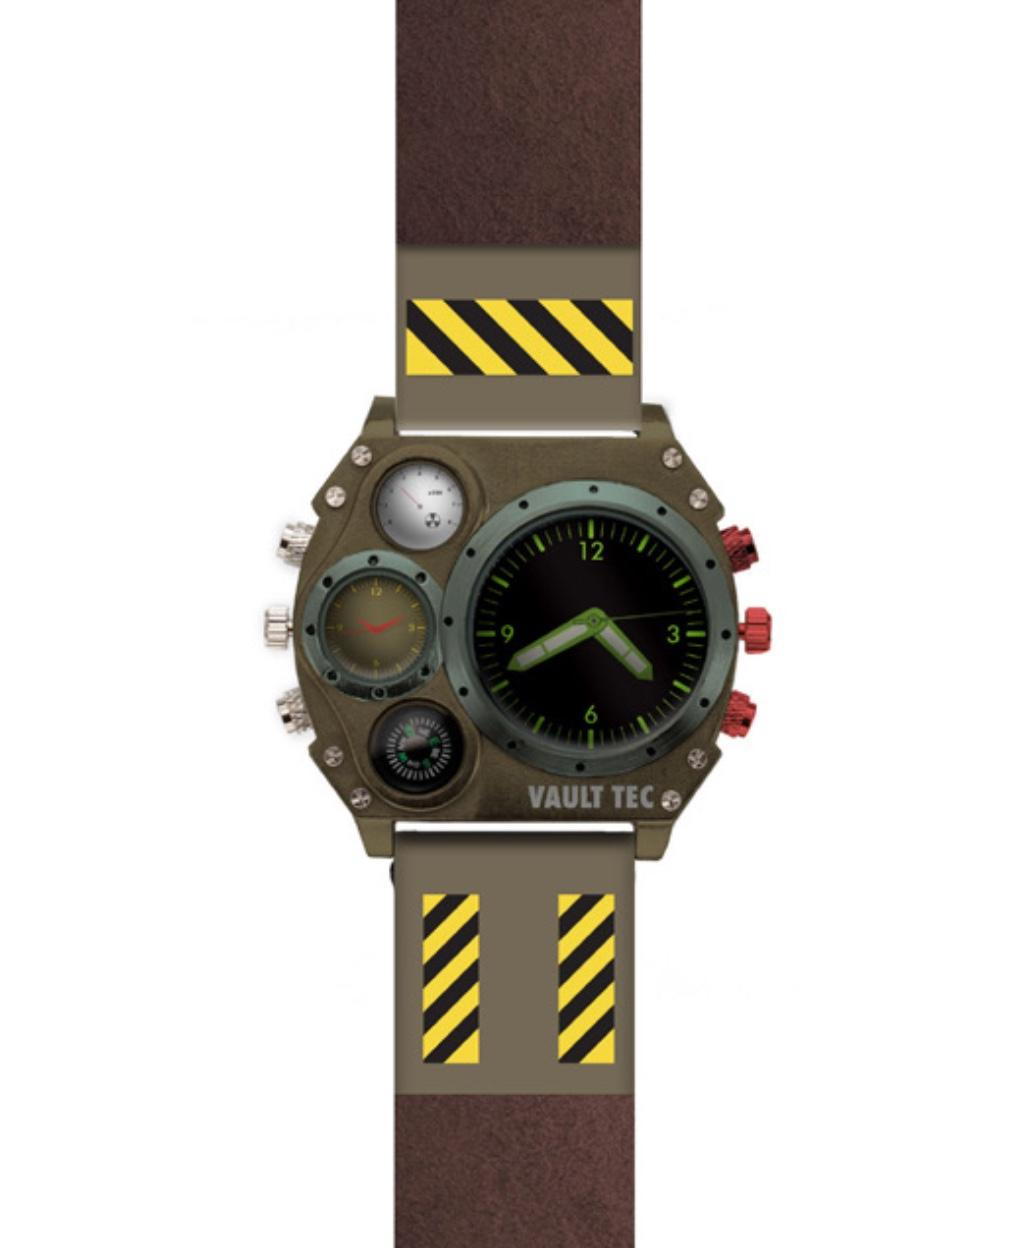 FALLOUT 76 - Vault Boy Watch